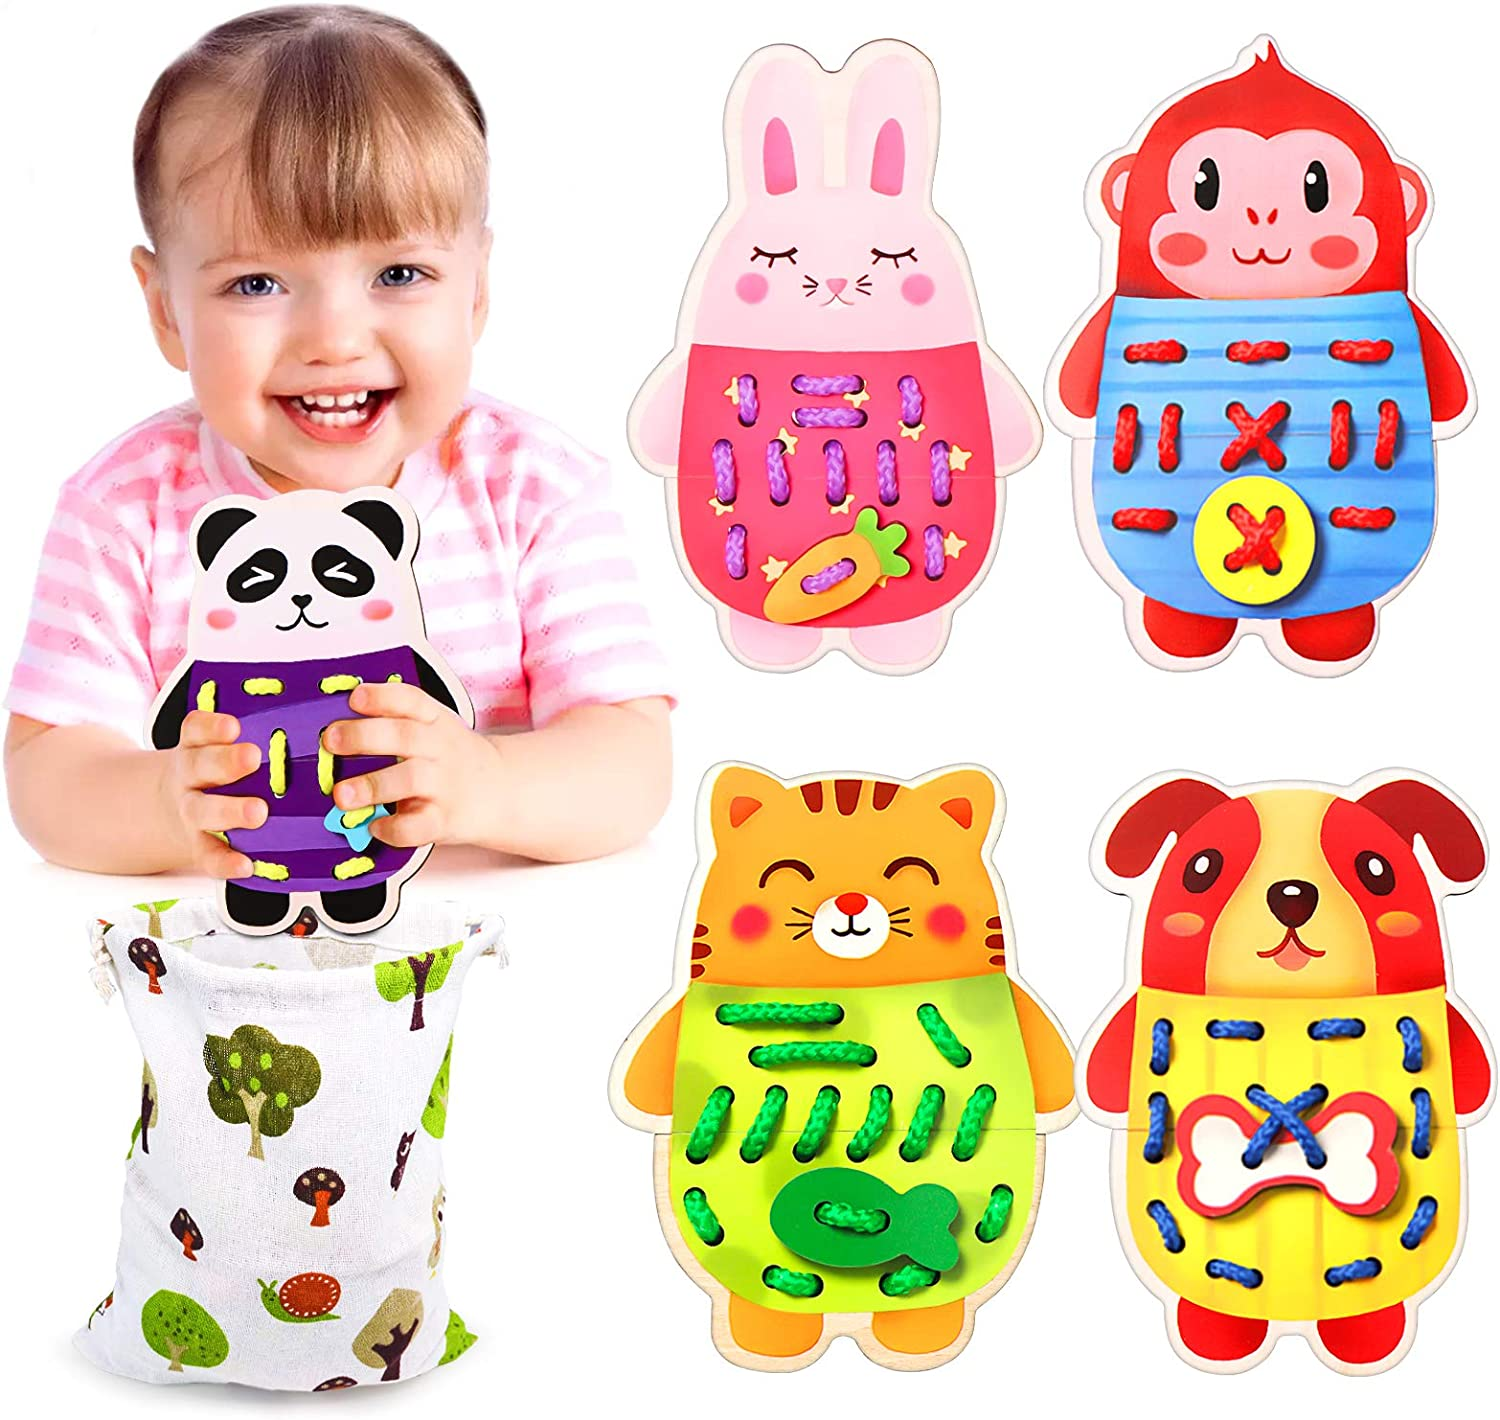 5 Set Wooden Lacing Threading Toy Learn Fine Motor Skills Toy Board Game Animal Car?Educational Gift for Toddlers Baby Kids